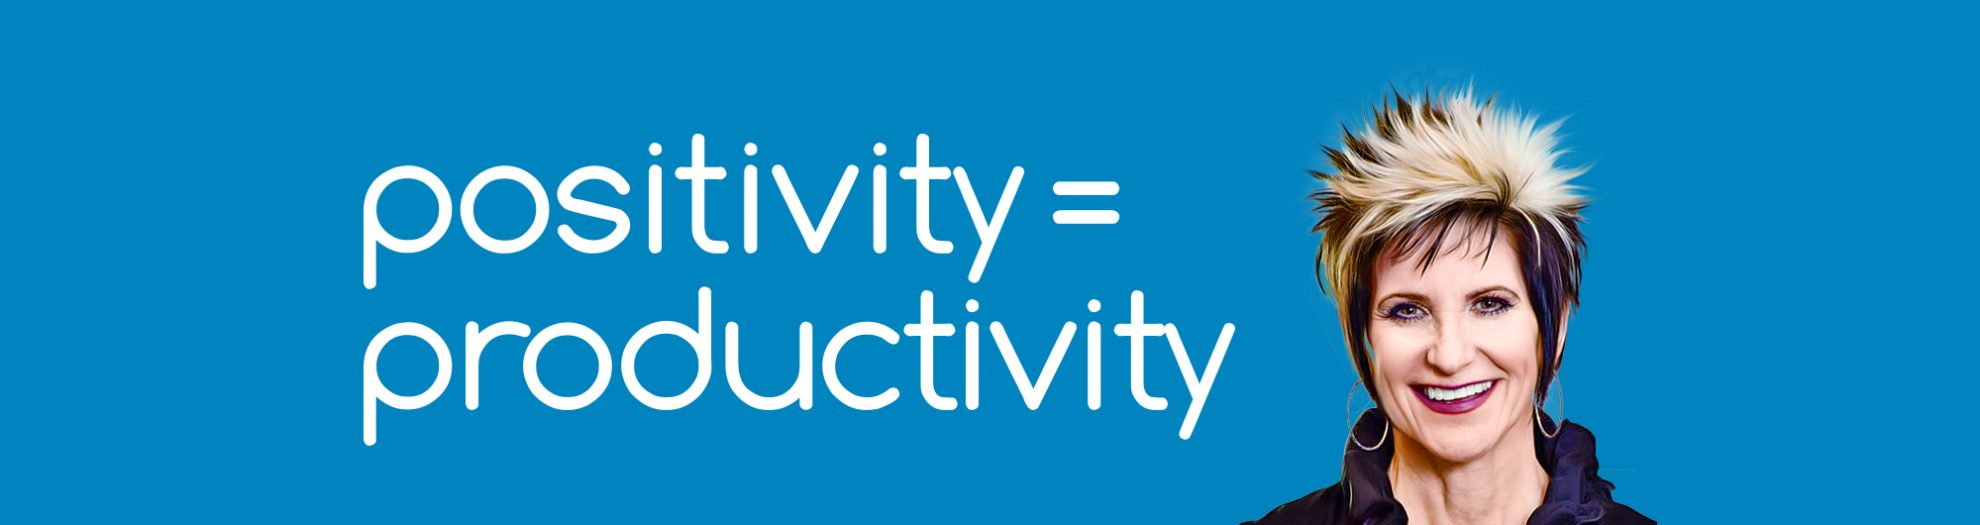 Positivity Equals Productivity